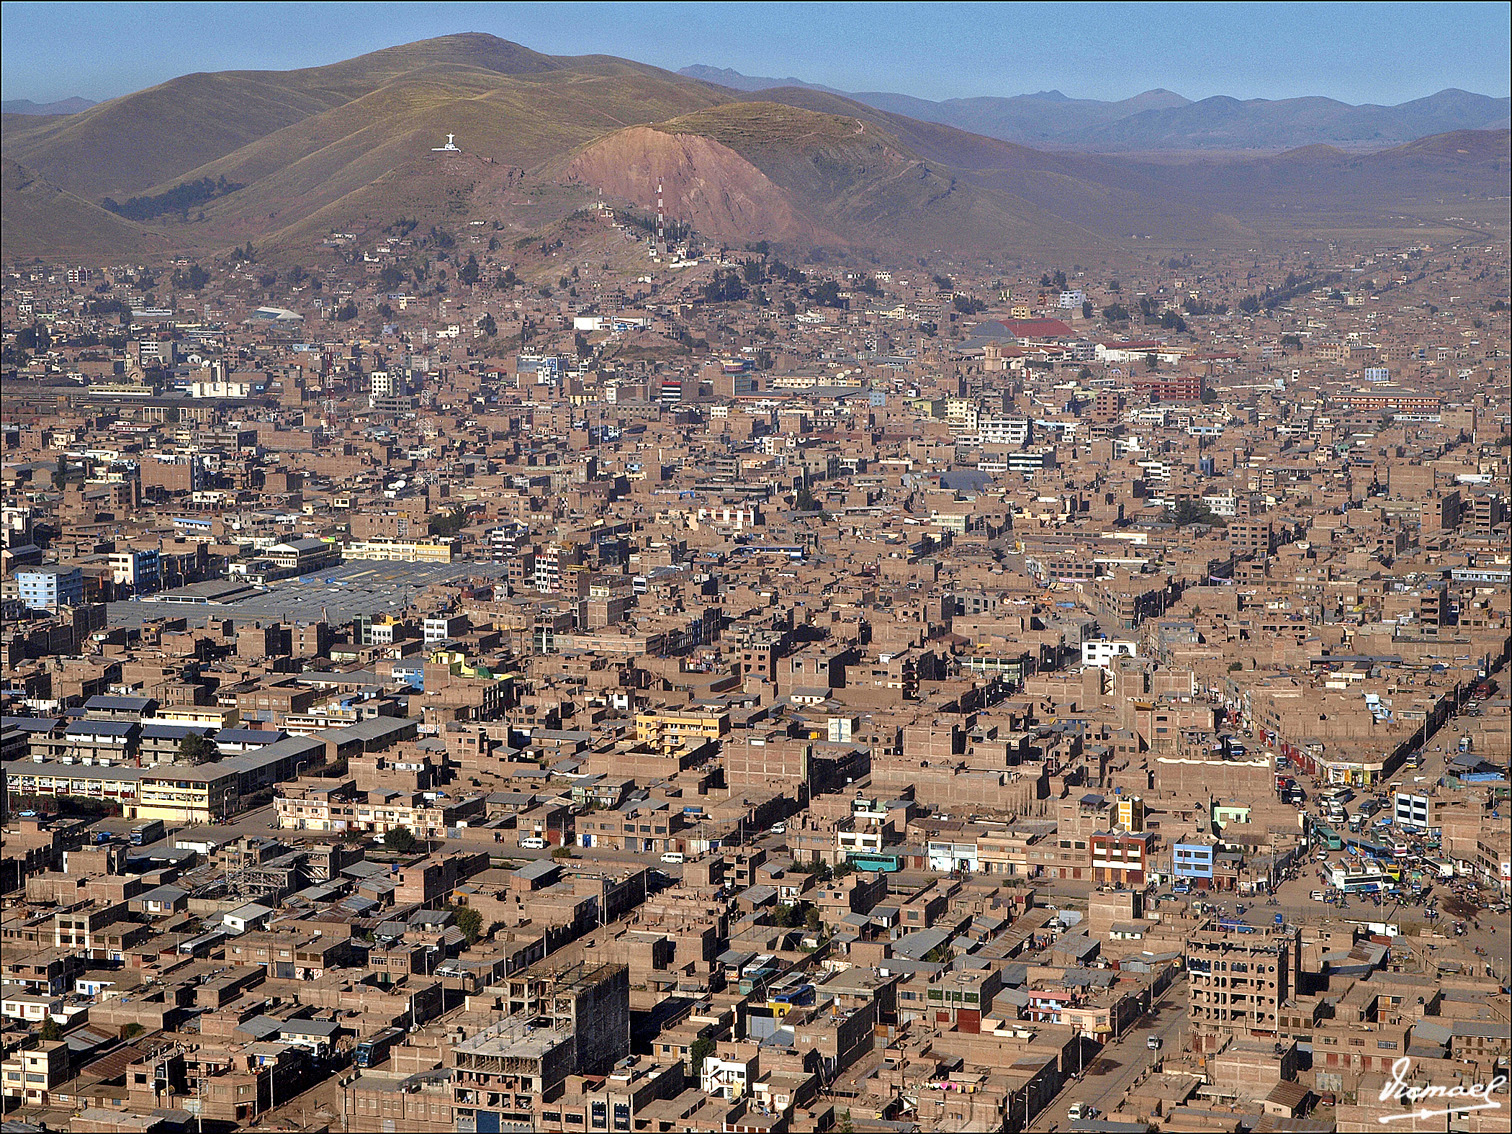 Aerial view of the city of Juliaca. Notice the brick color and metal frames that show the unfinished nature of most buildings. Photo credit: Panoramio